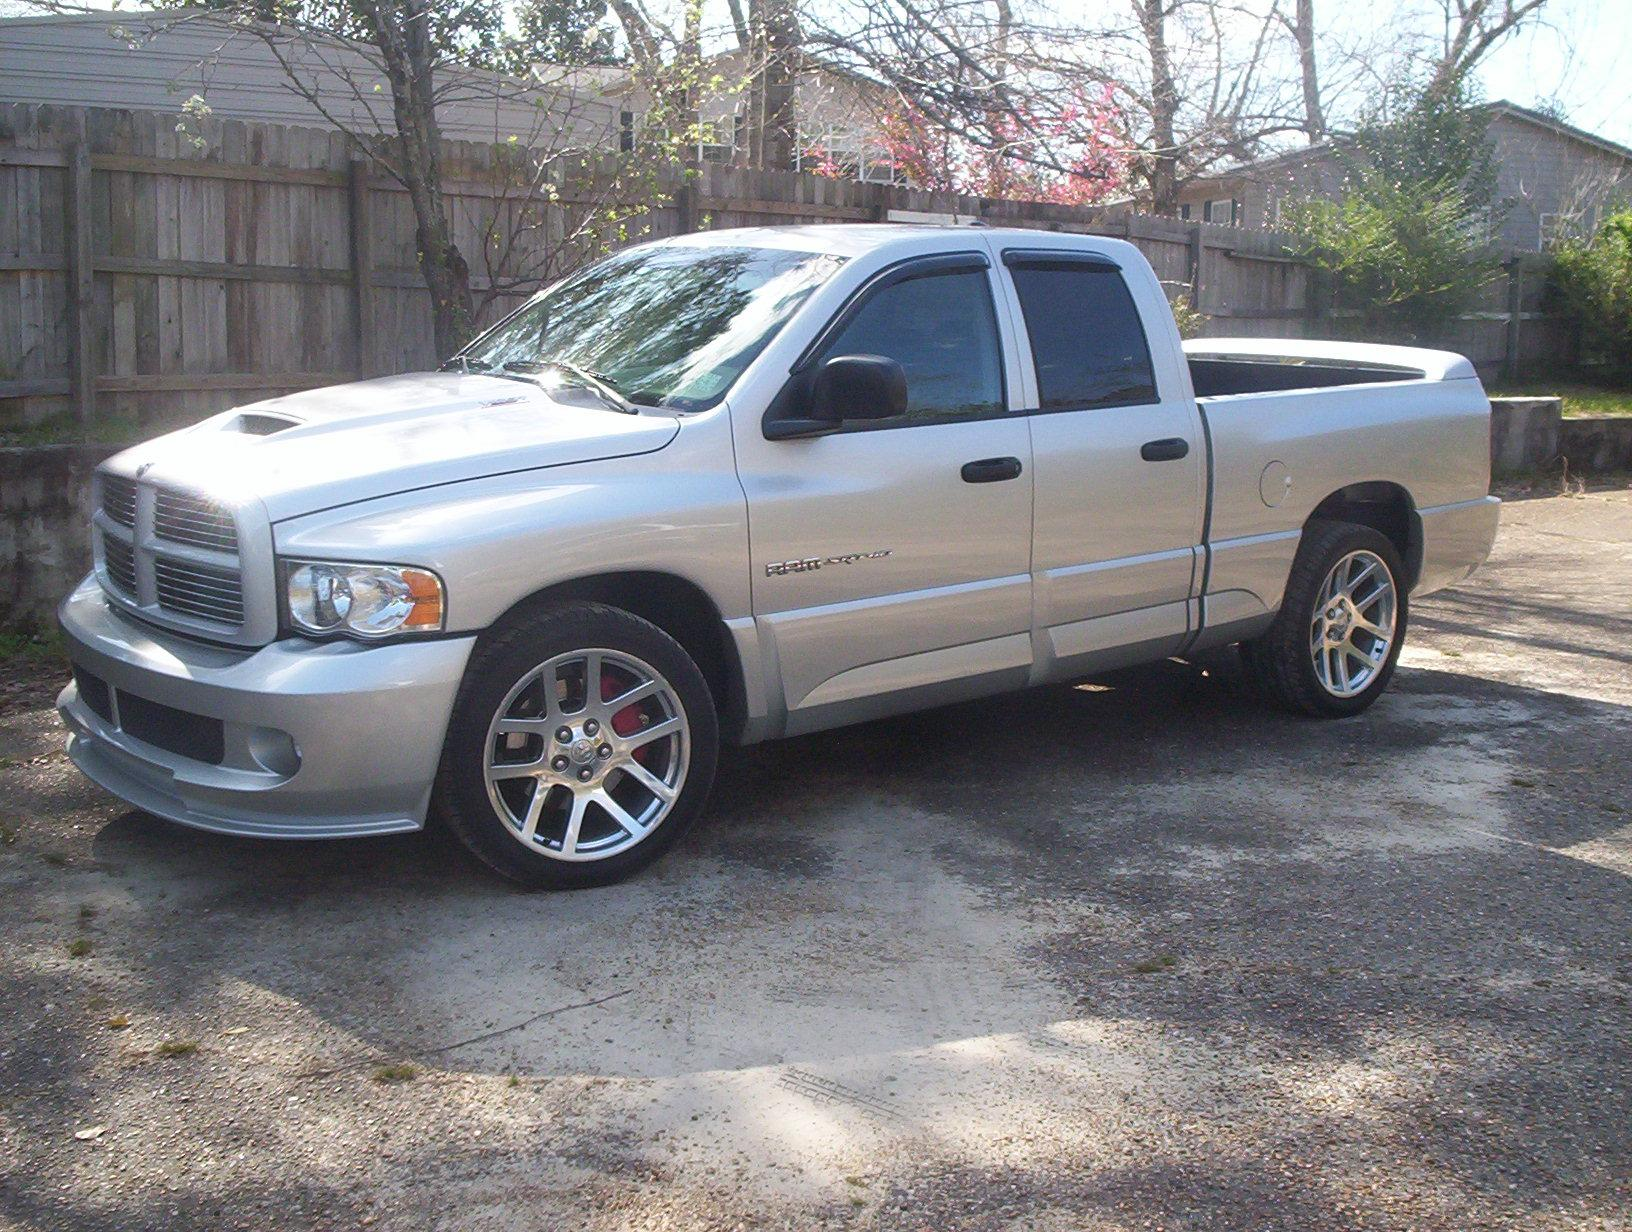 vipertruck1 2005 dodge ram srt 10 specs photos modification info at cardomain. Black Bedroom Furniture Sets. Home Design Ideas